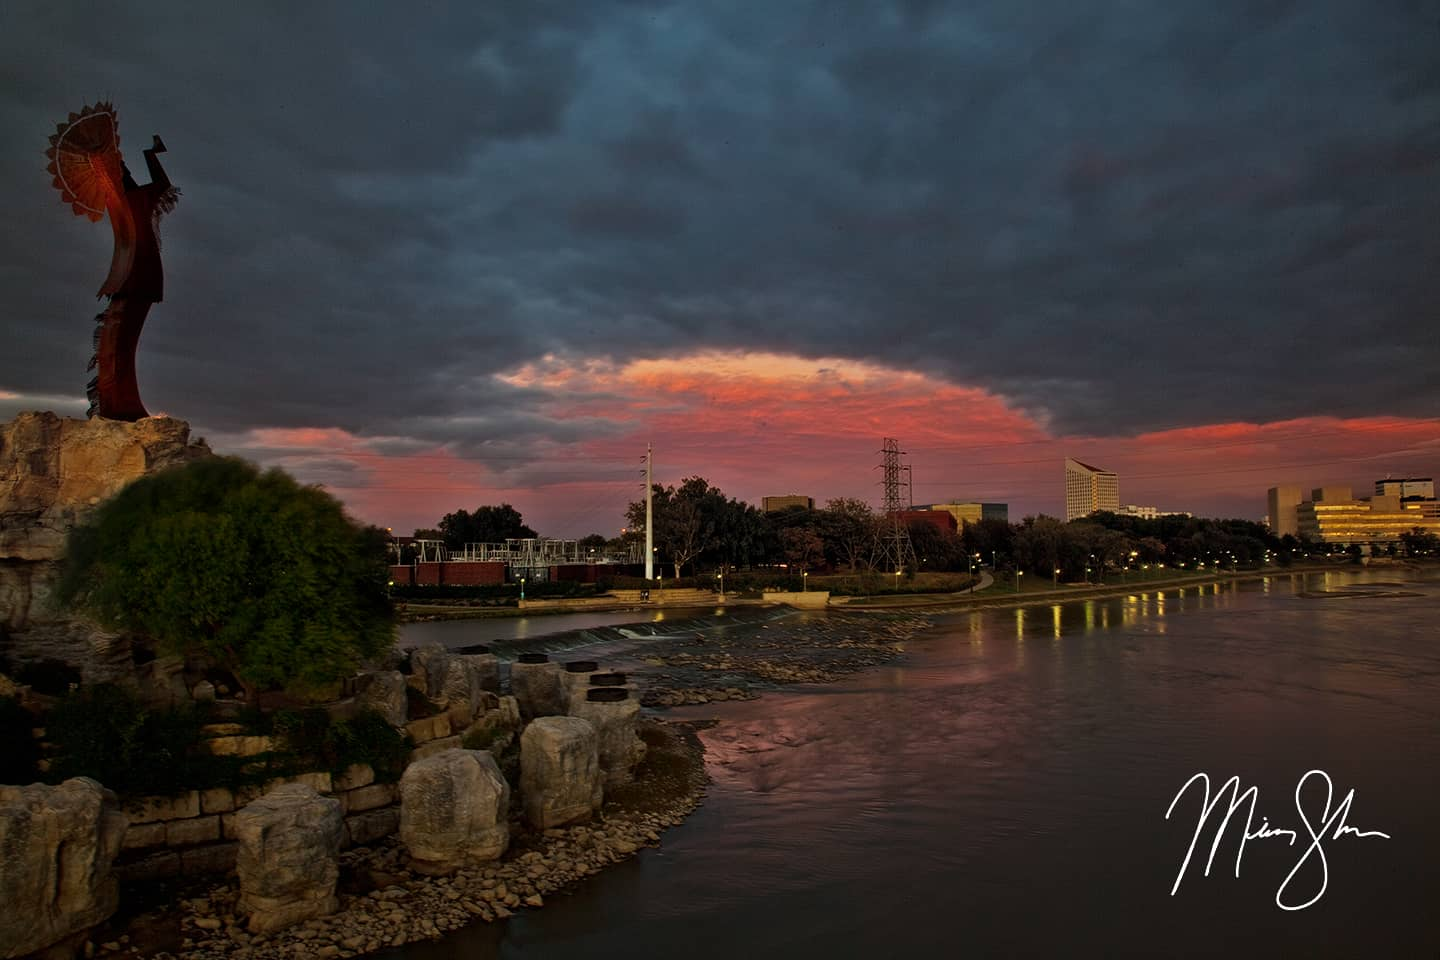 Stormy Sunset at the Keeper of the Plains - Keeper of the Plains, Wichita, Kansas